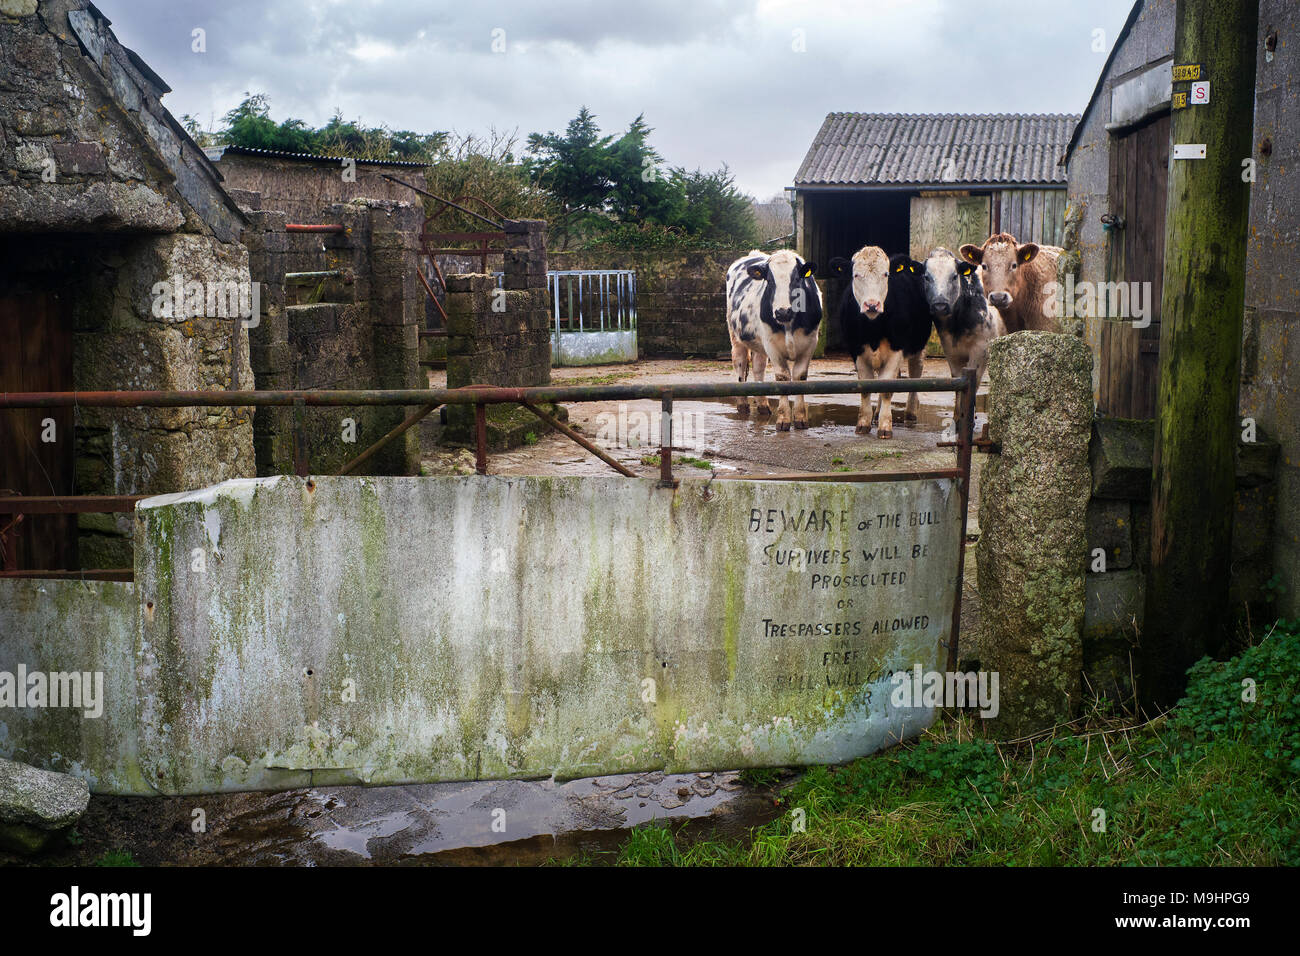 'Beware of the bull,survivers will be prosecuted or trespassers allowed in free,Bull will charge later 'farm yard sign st Breward Bodmin moor Cornwall - Stock Image